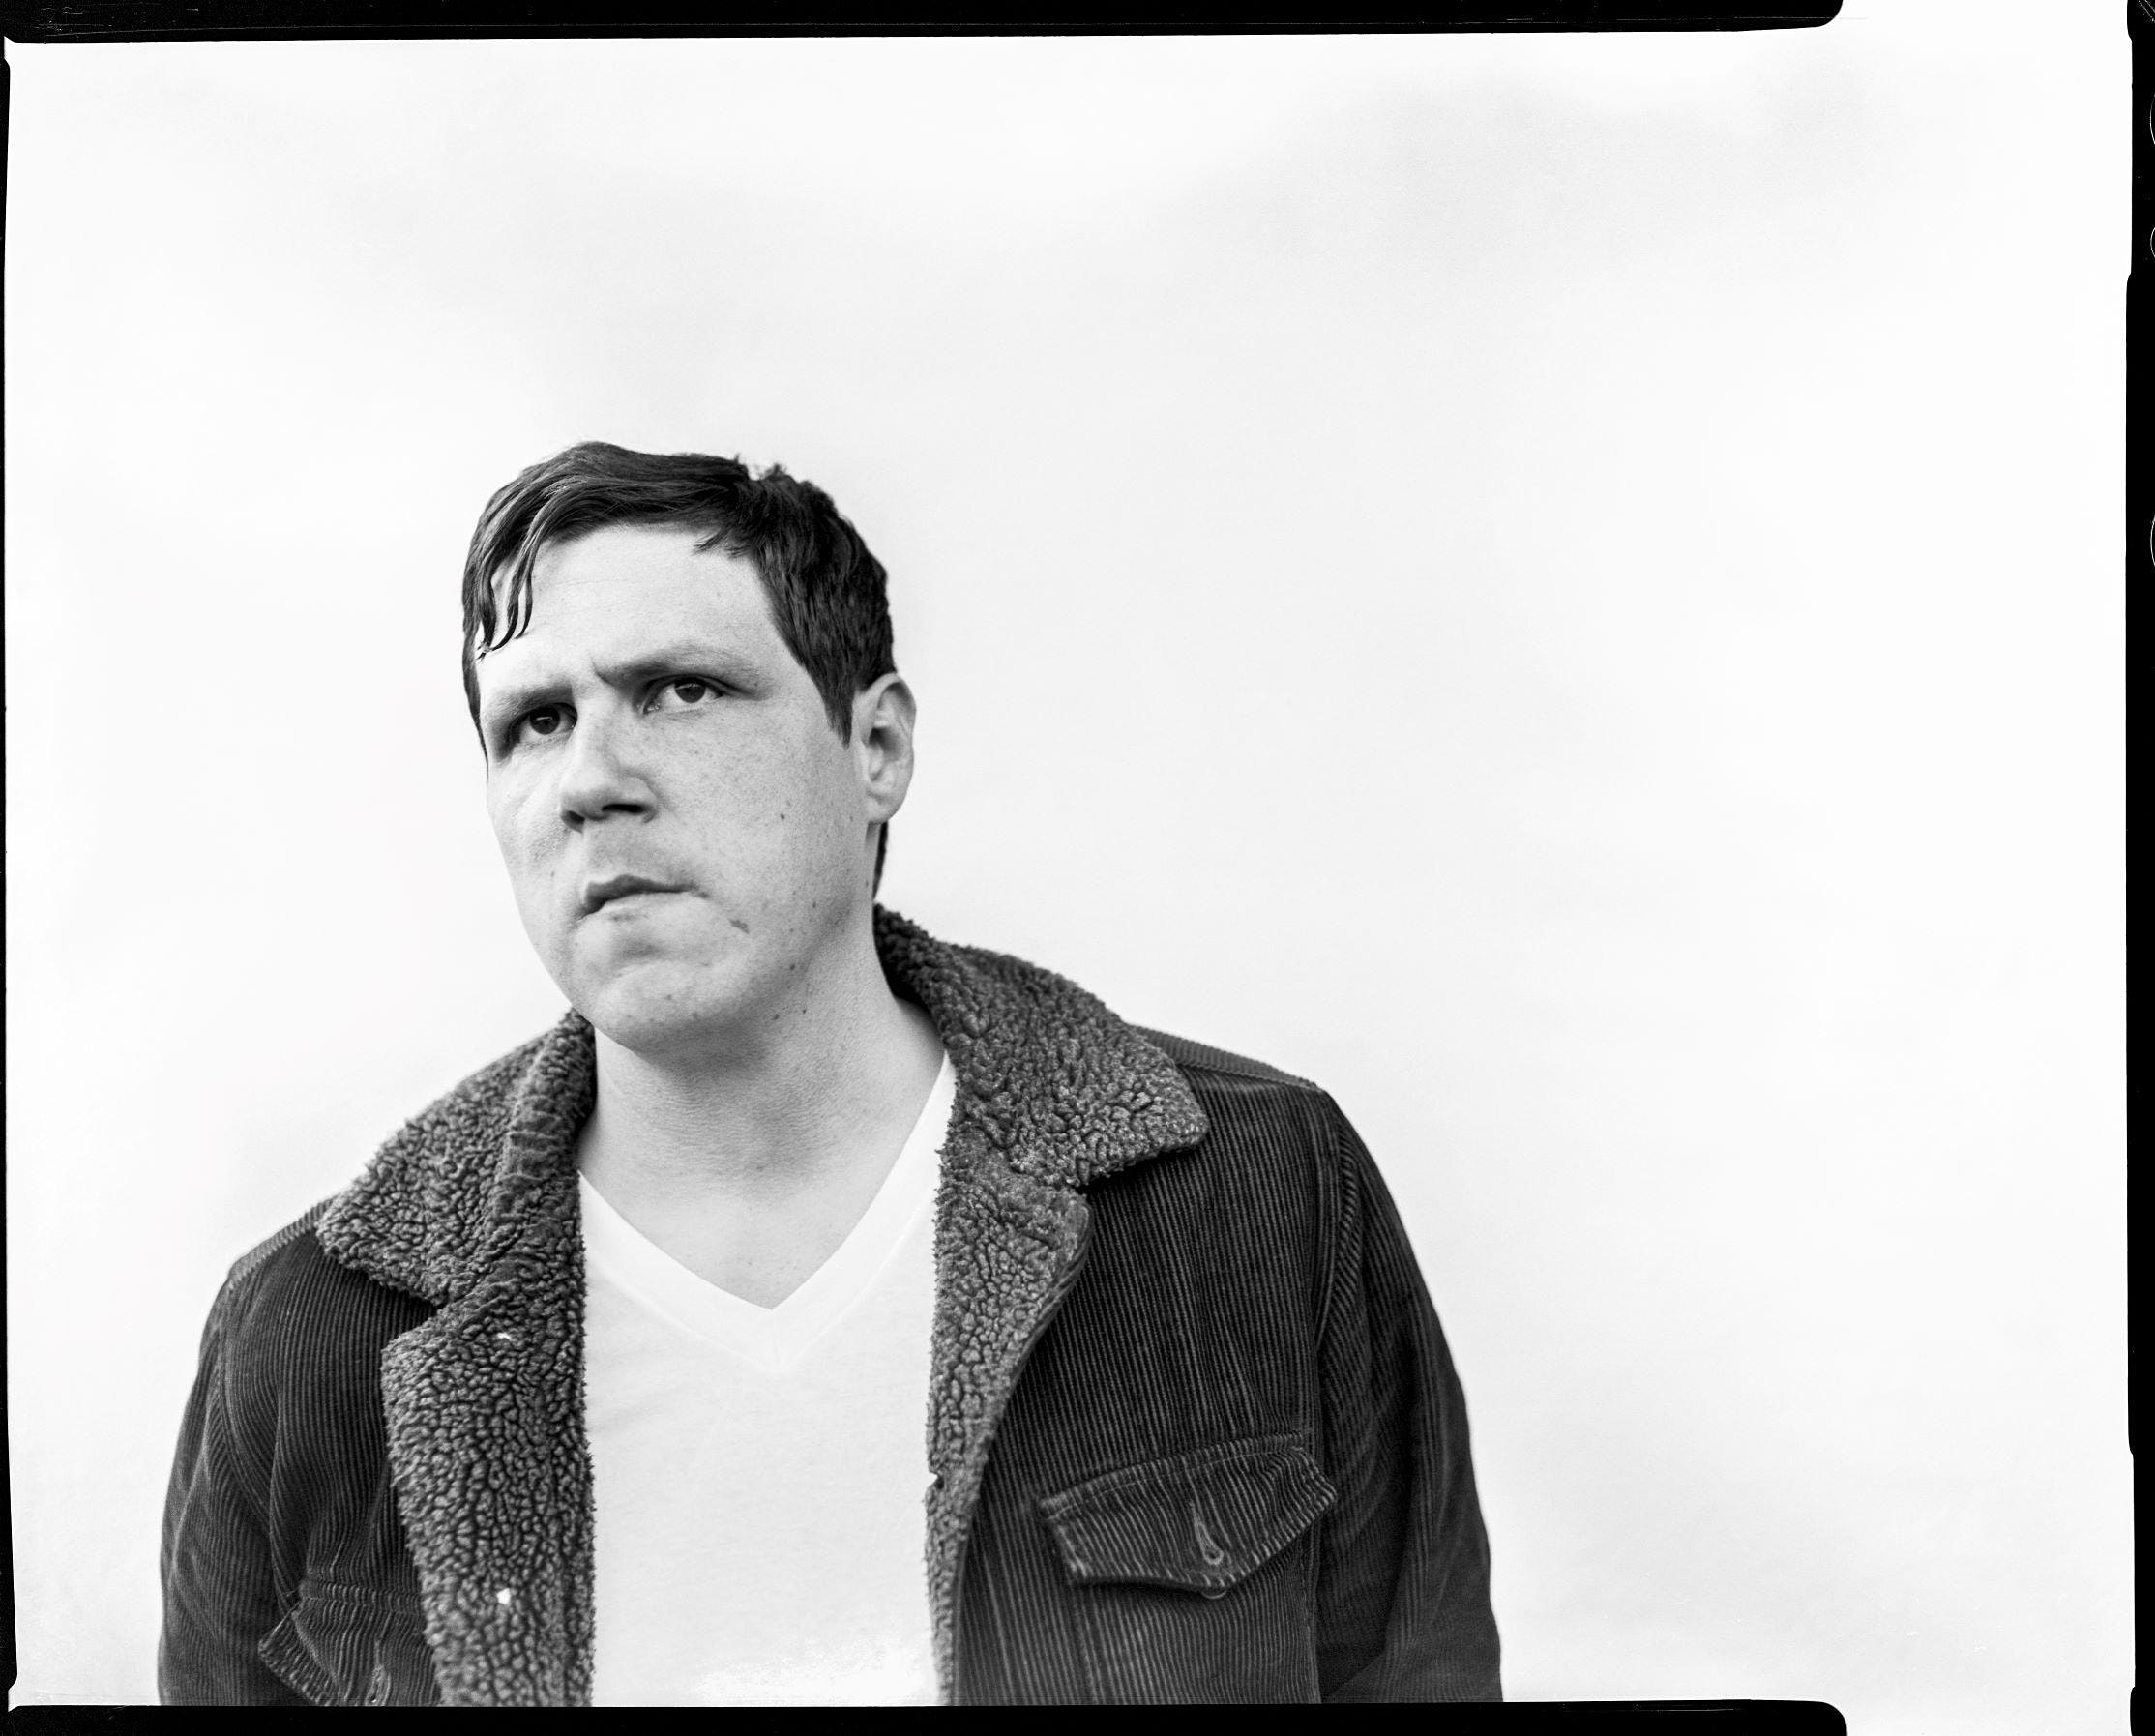 (RESCHEDULED) Damien Jurado